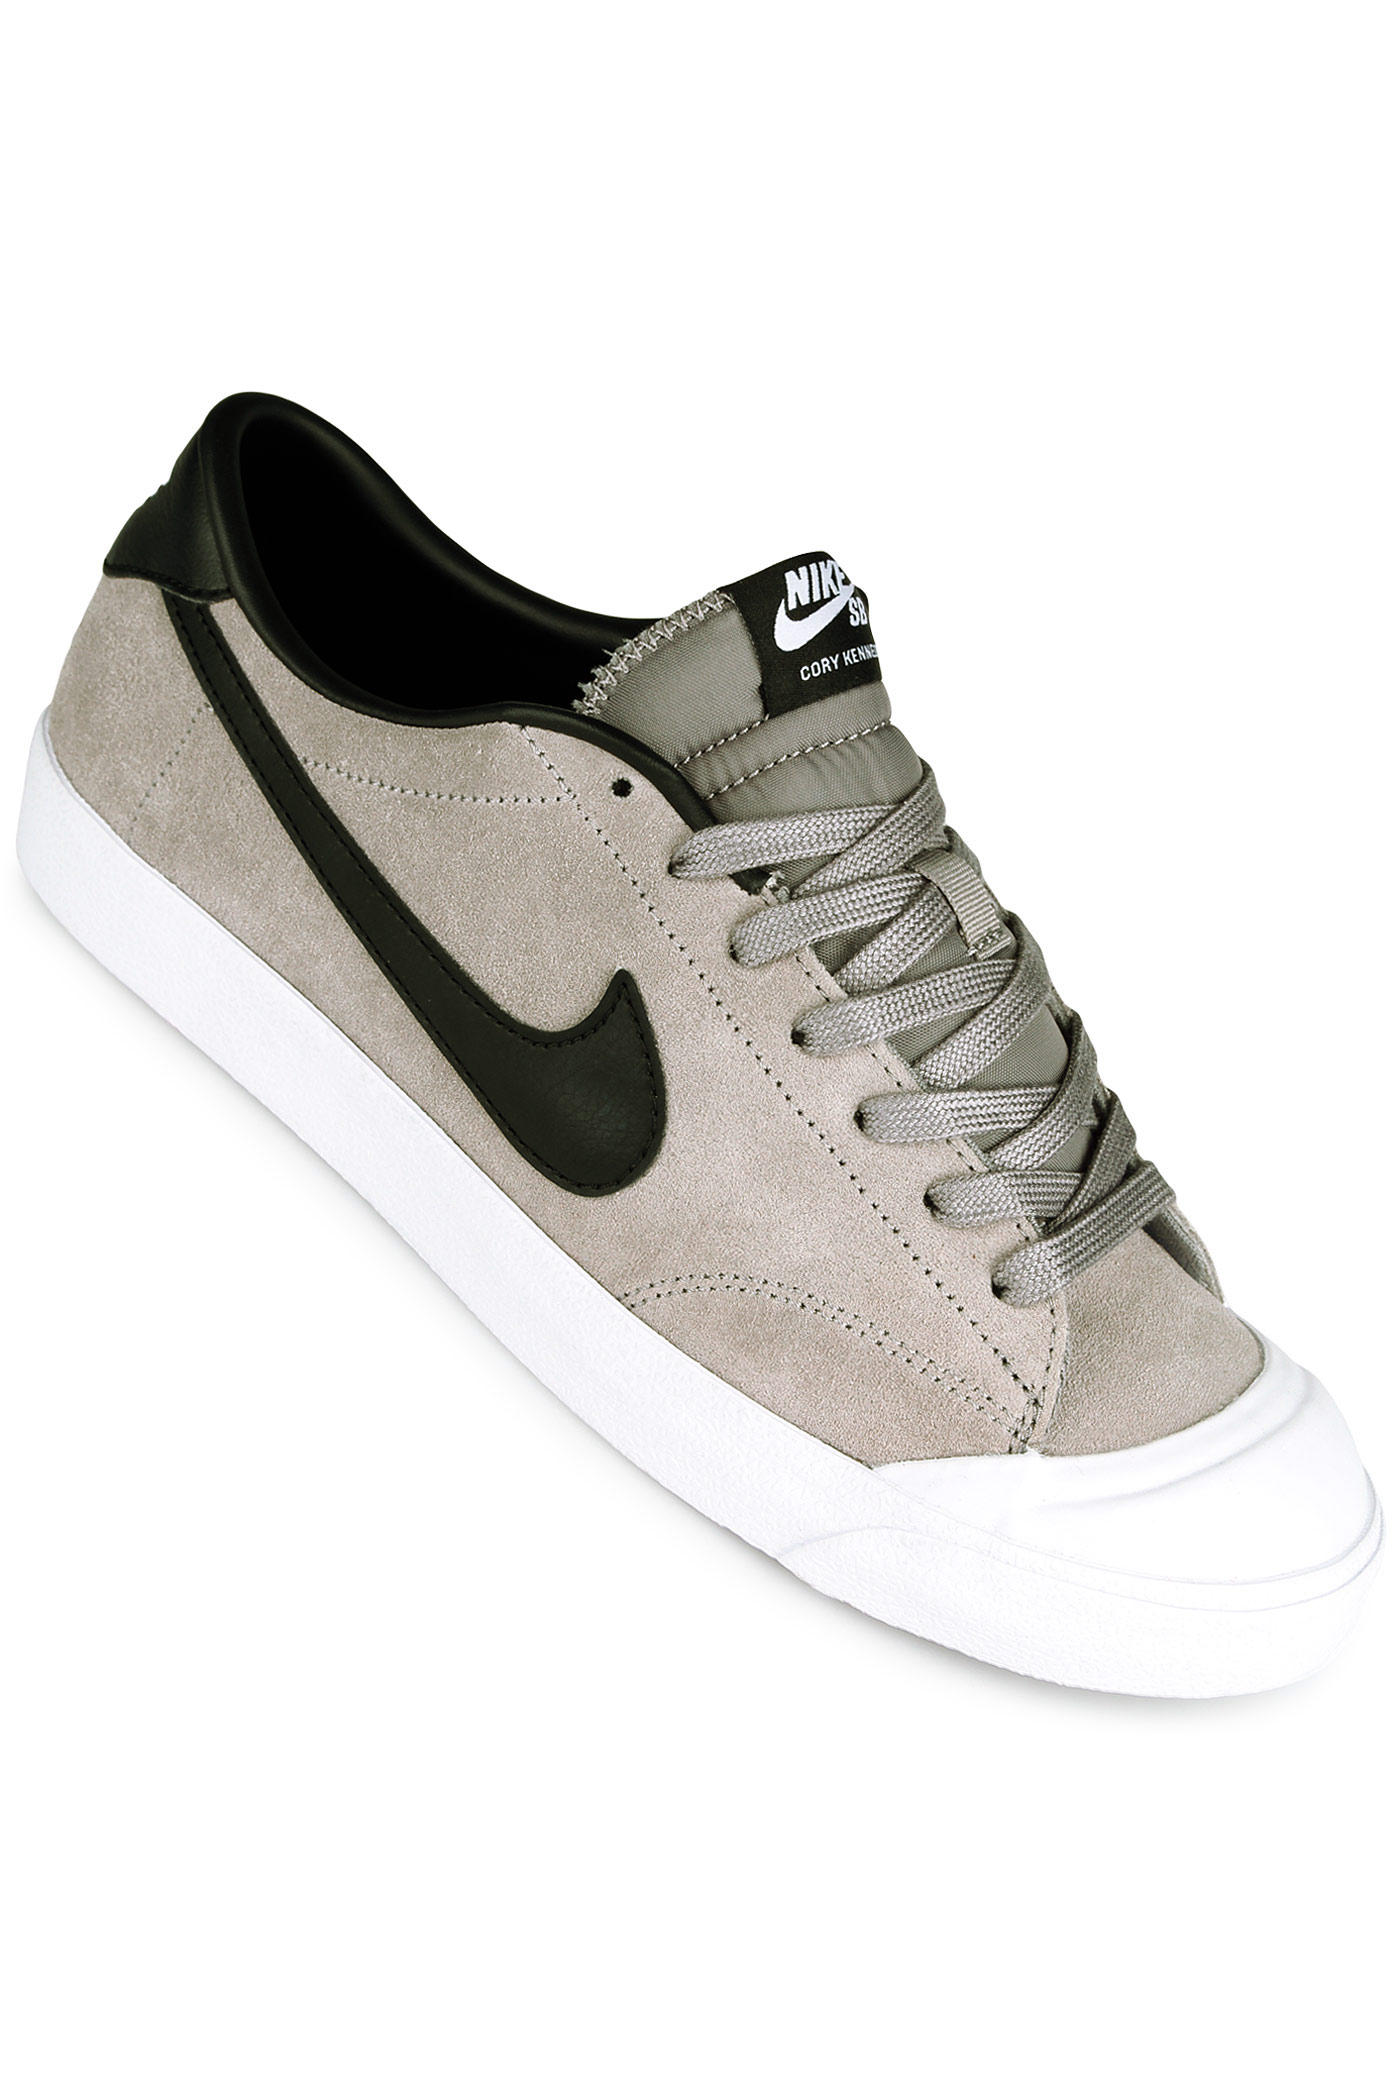 630bbb8950725 ... Nike SB Zoom All Court Cory Kennedy Shoes (dust black white) ...